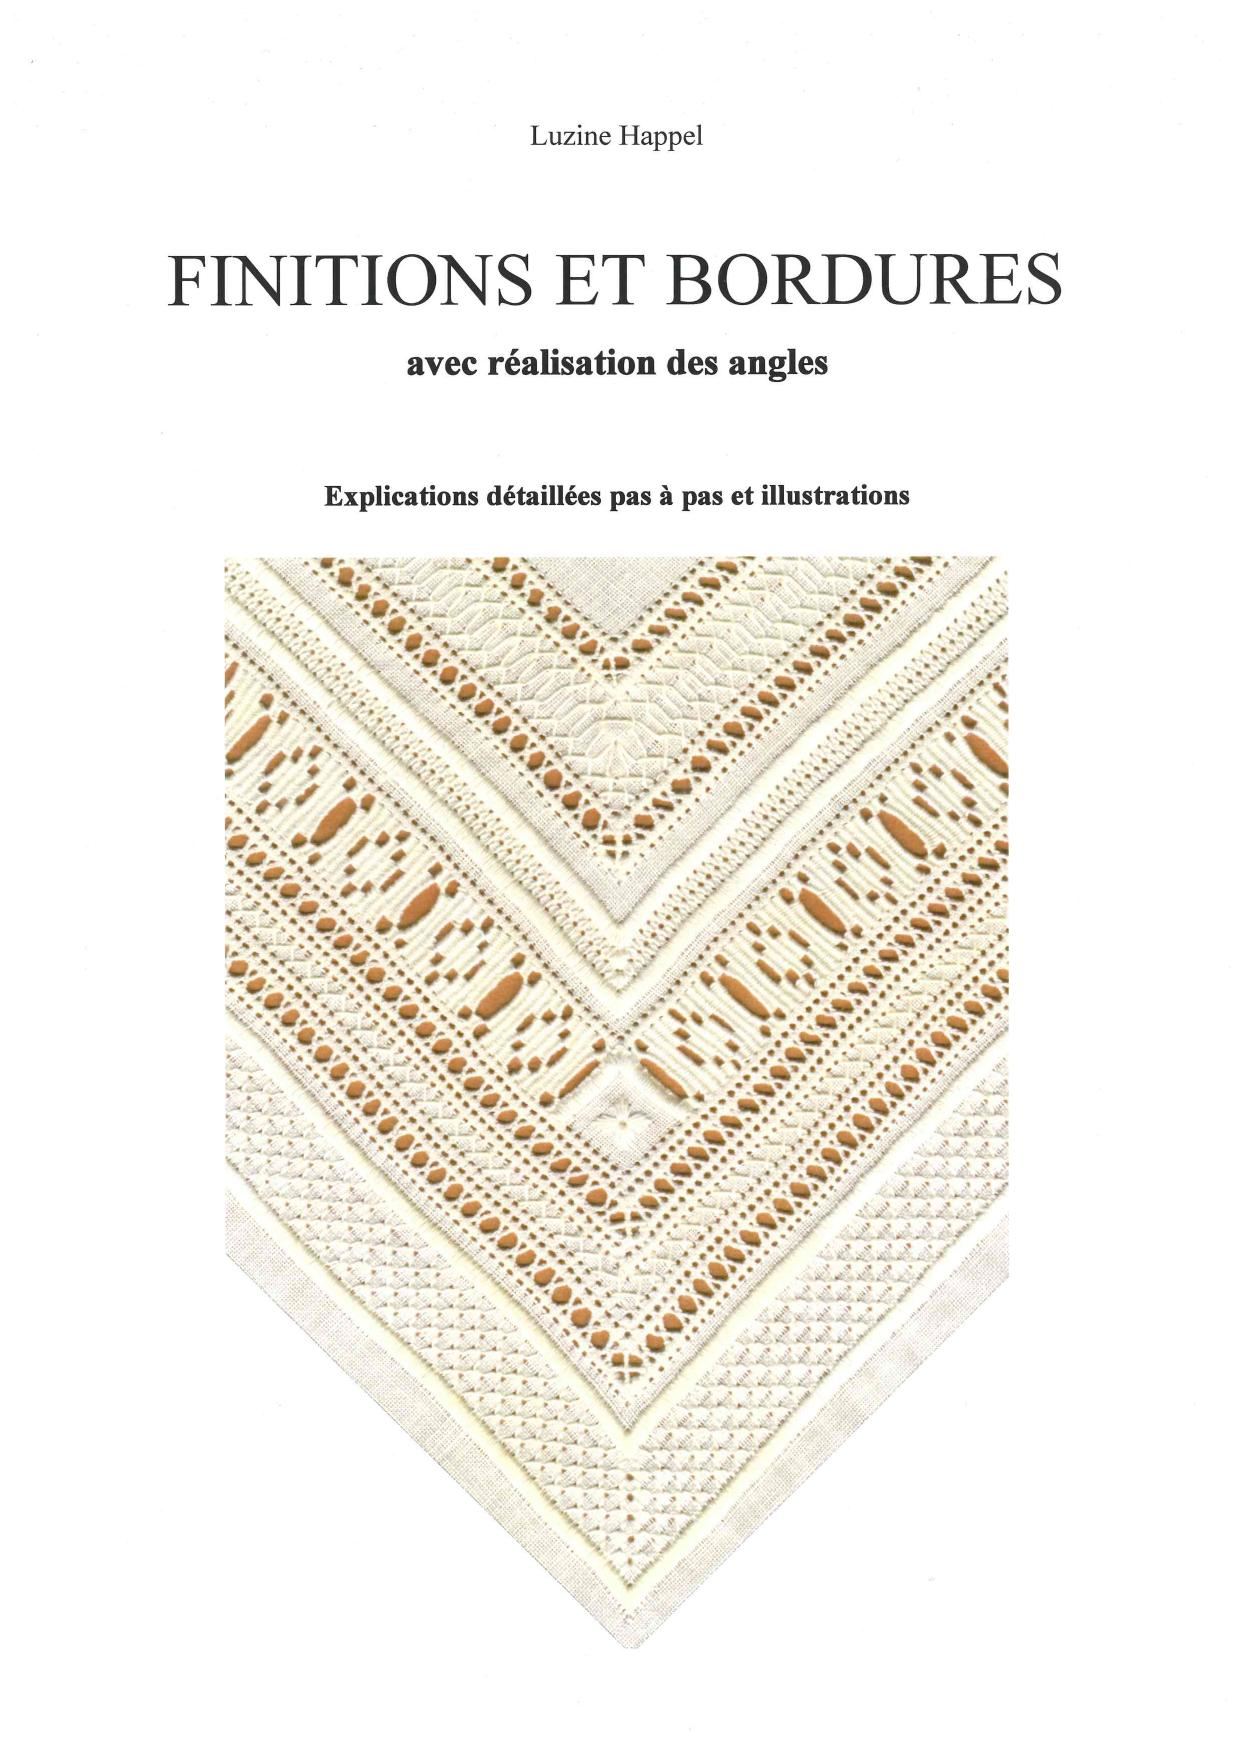 FINITIONS ET BORDURES 1 / 10